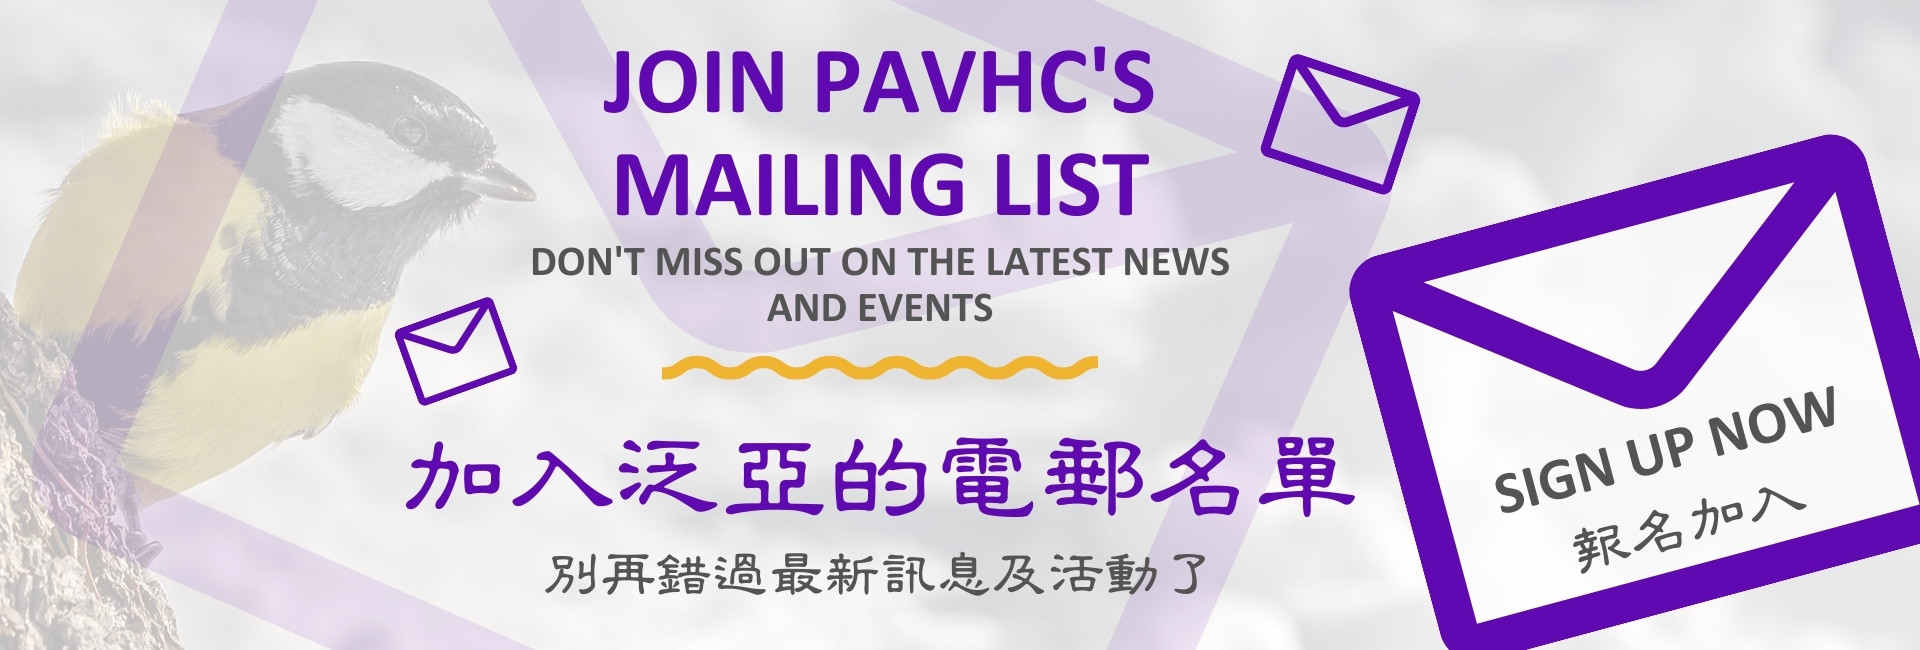 Join PAVHC's Mailing List